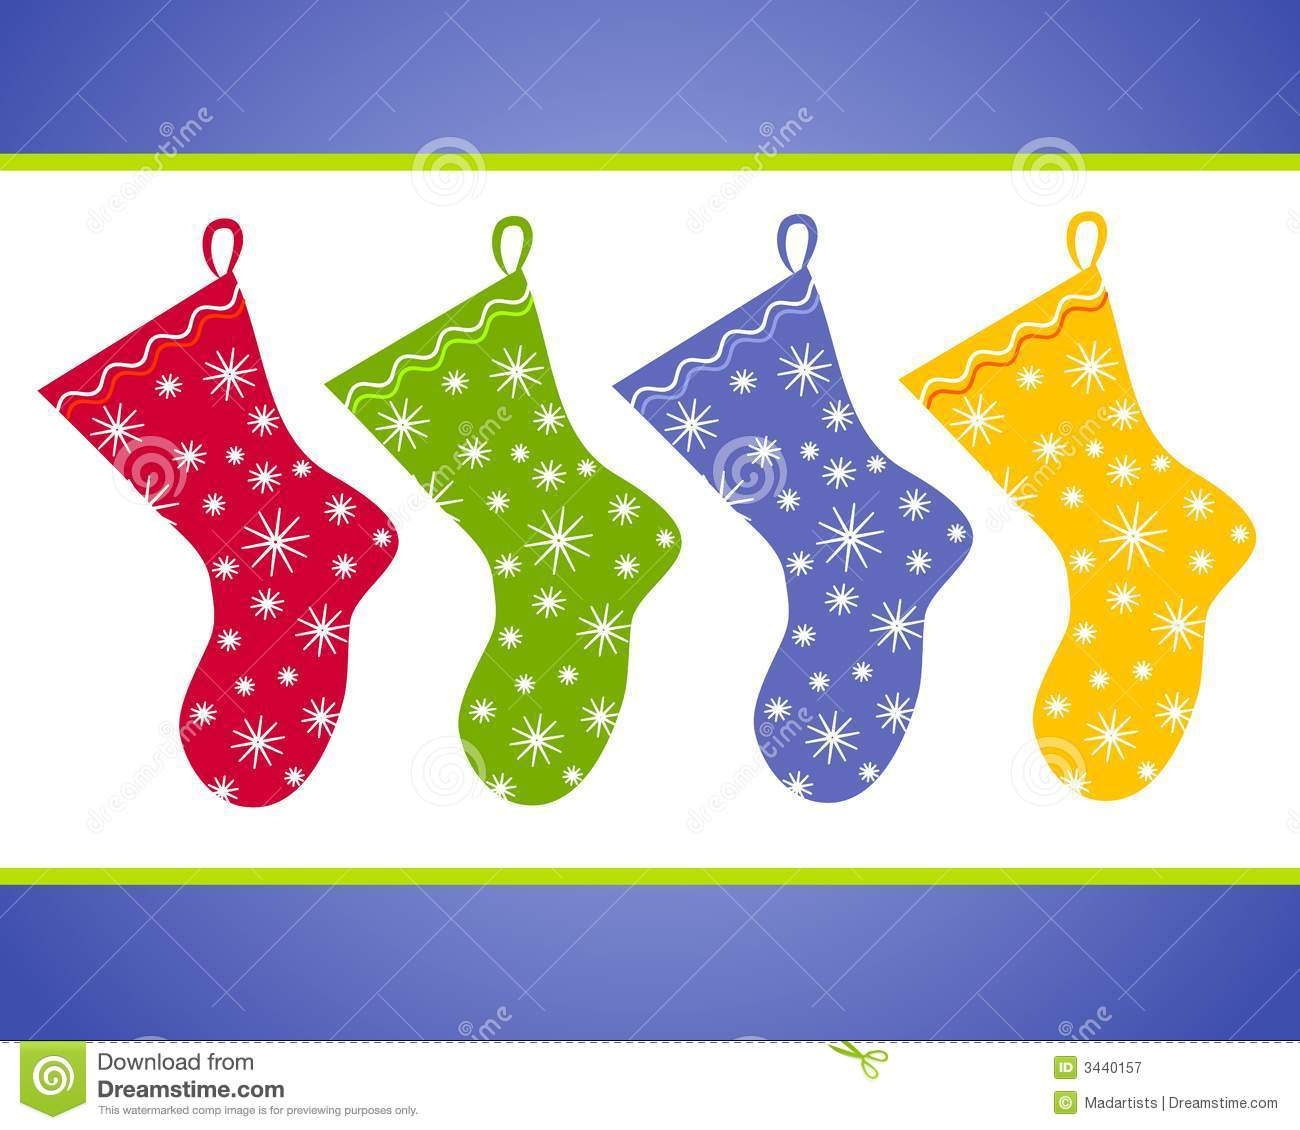 Christmas Stockings Clip Art Royalty Free Stock Photography.